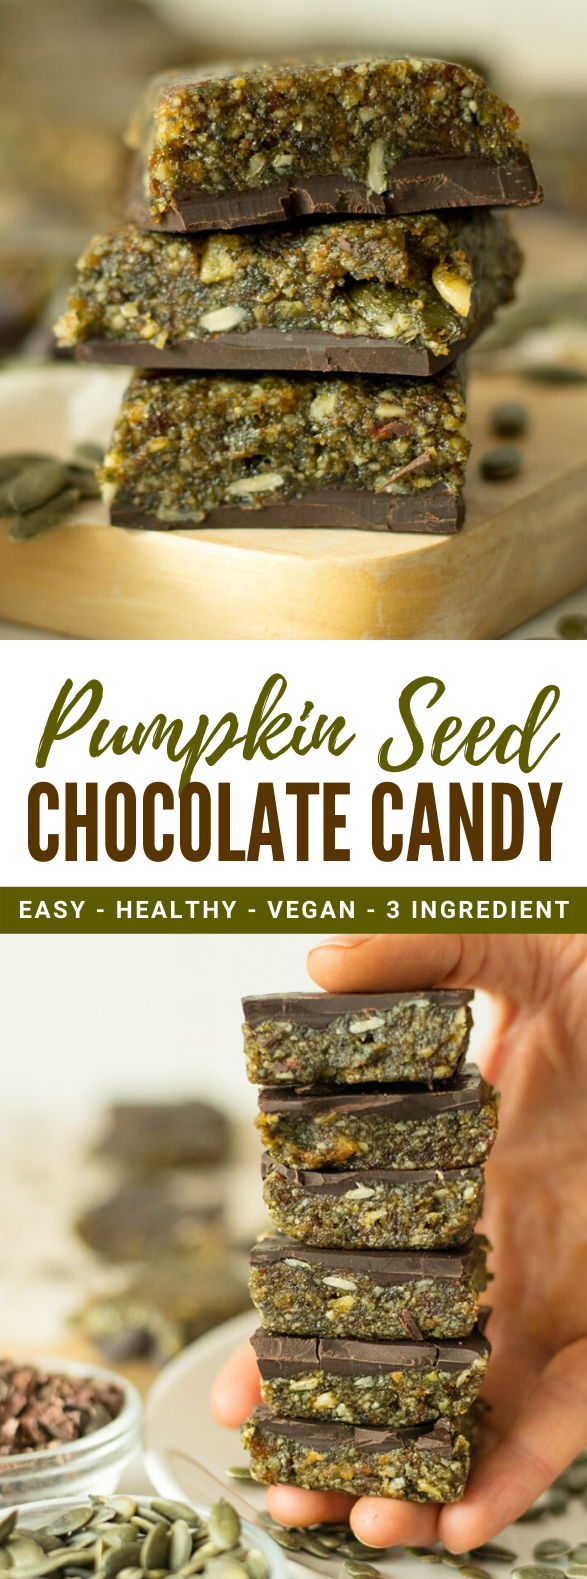 3 INGREDIENT PUMPKIN SEED CHOCOLATE CANDY RECIPE #protein #healthy